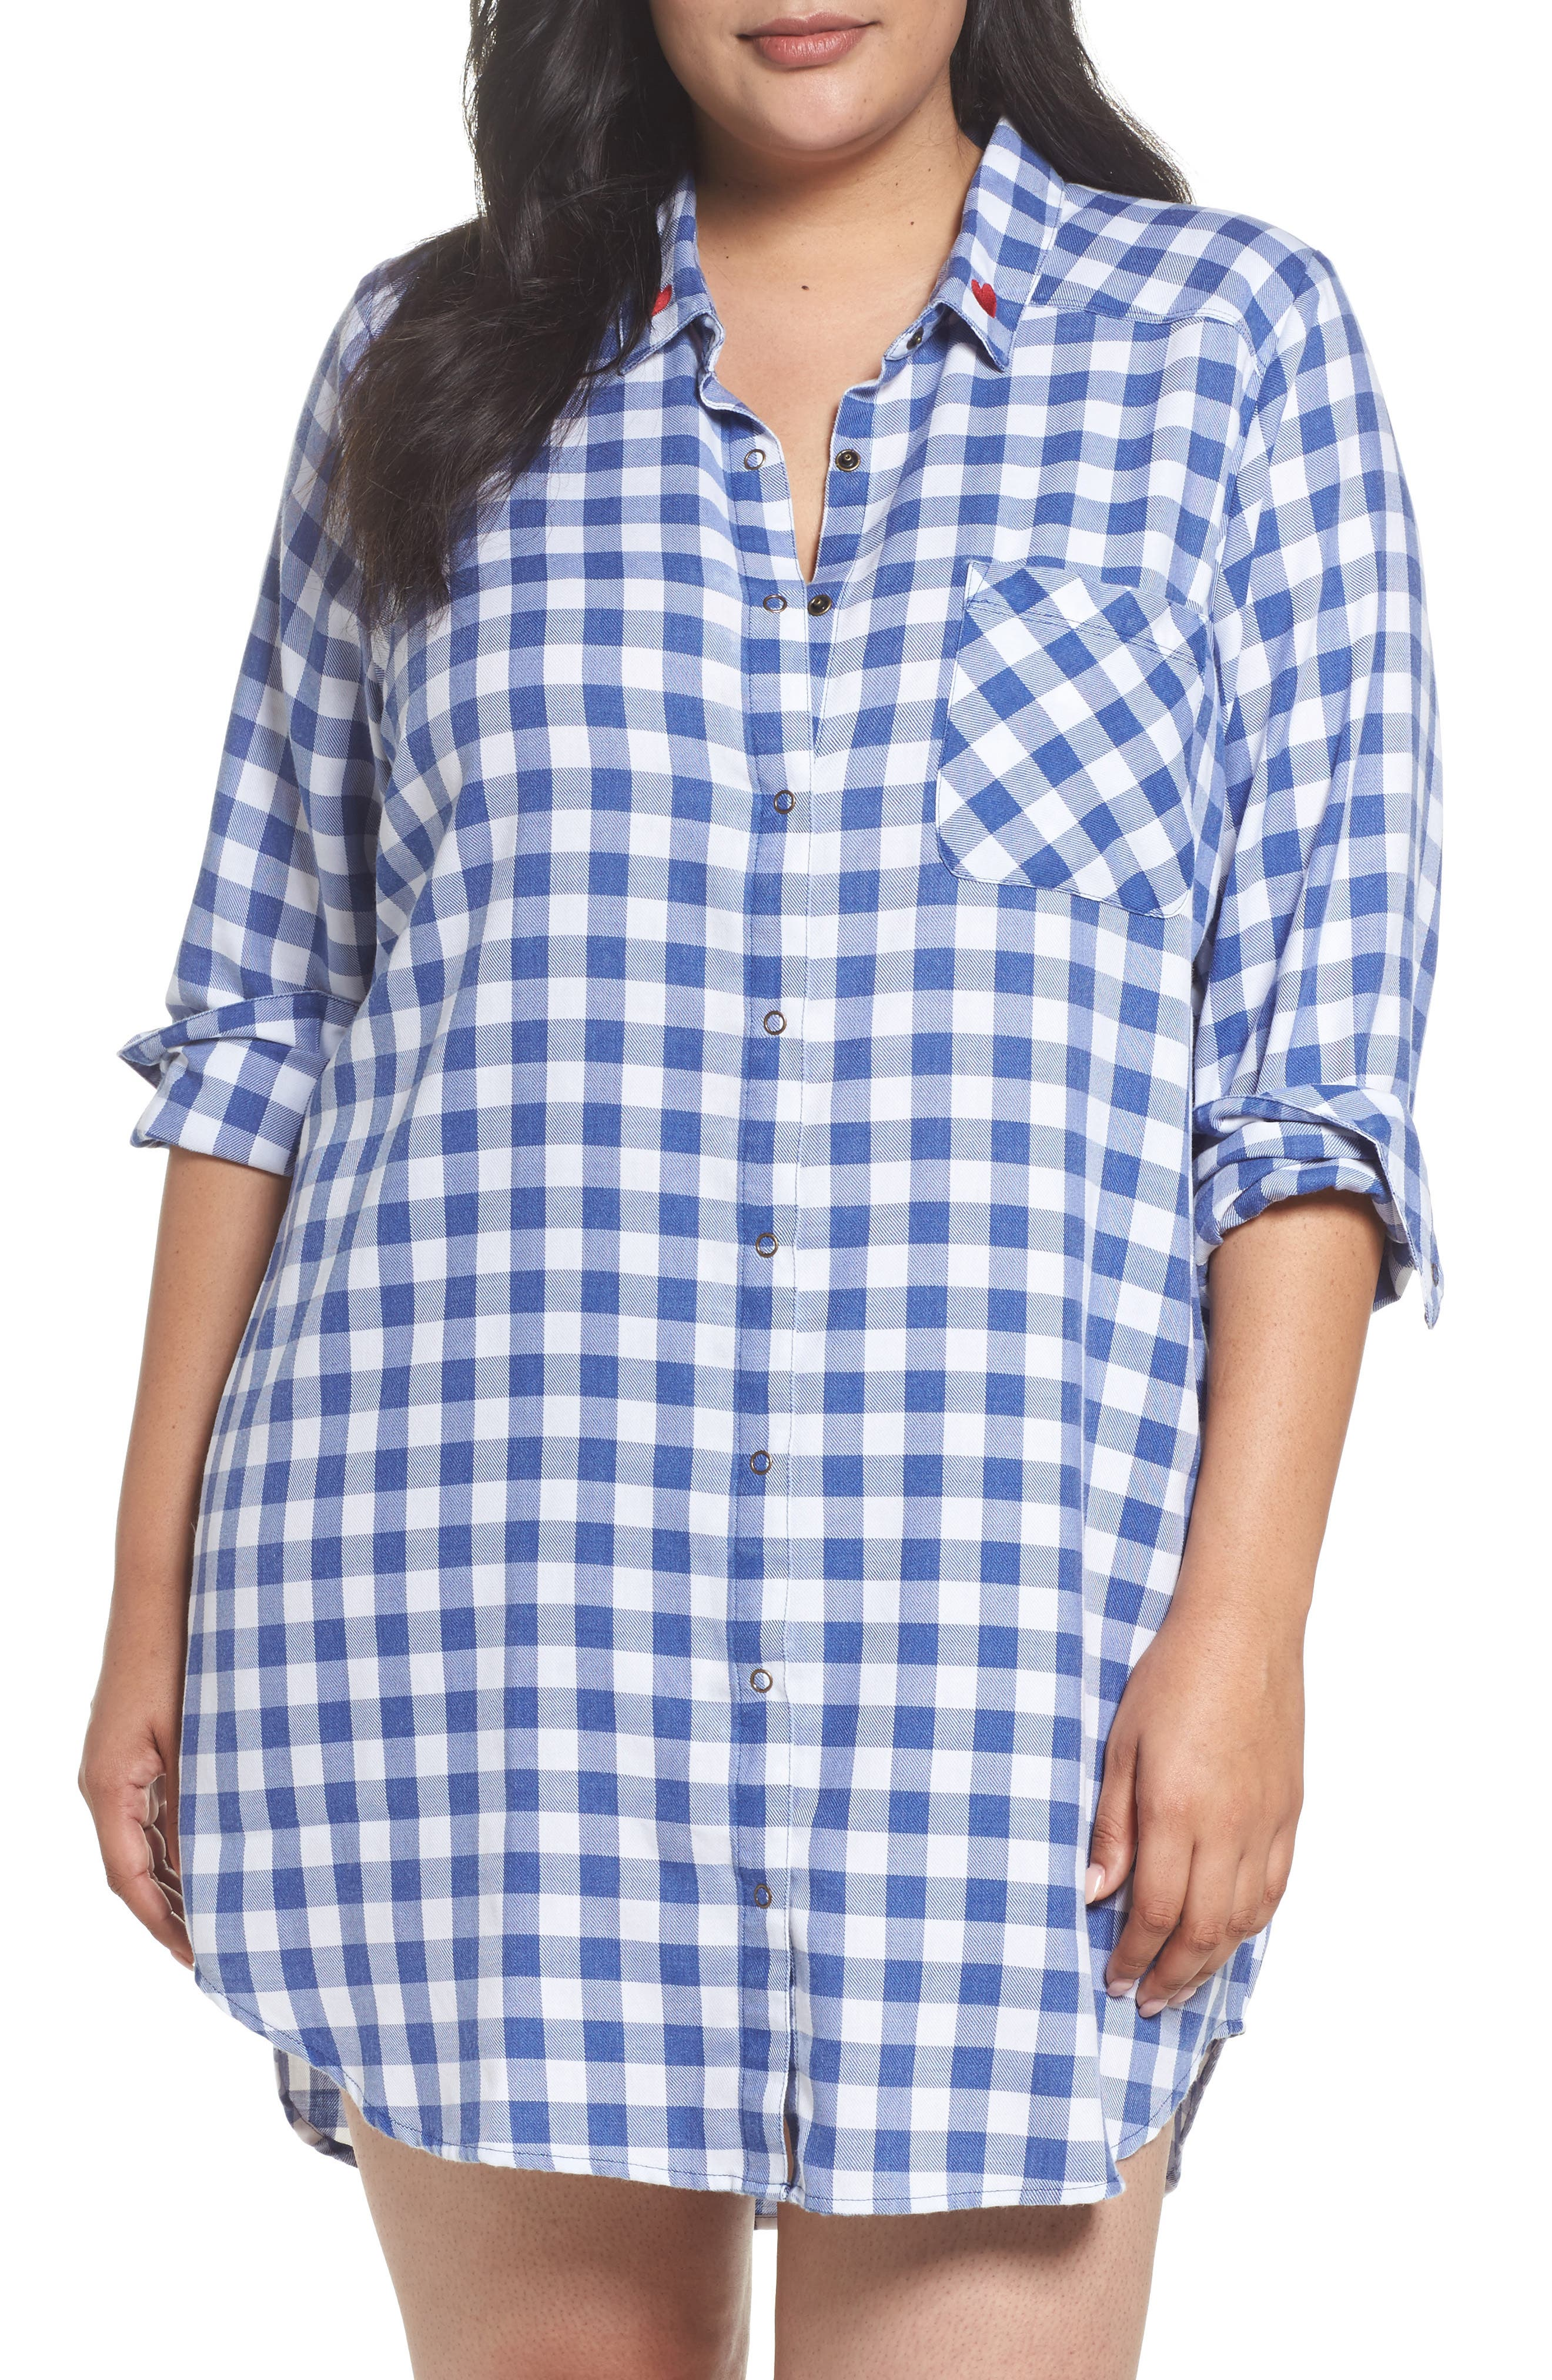 Alternate Image 1 Selected - Make + Model Plaid Night Shirt (Plus Size)